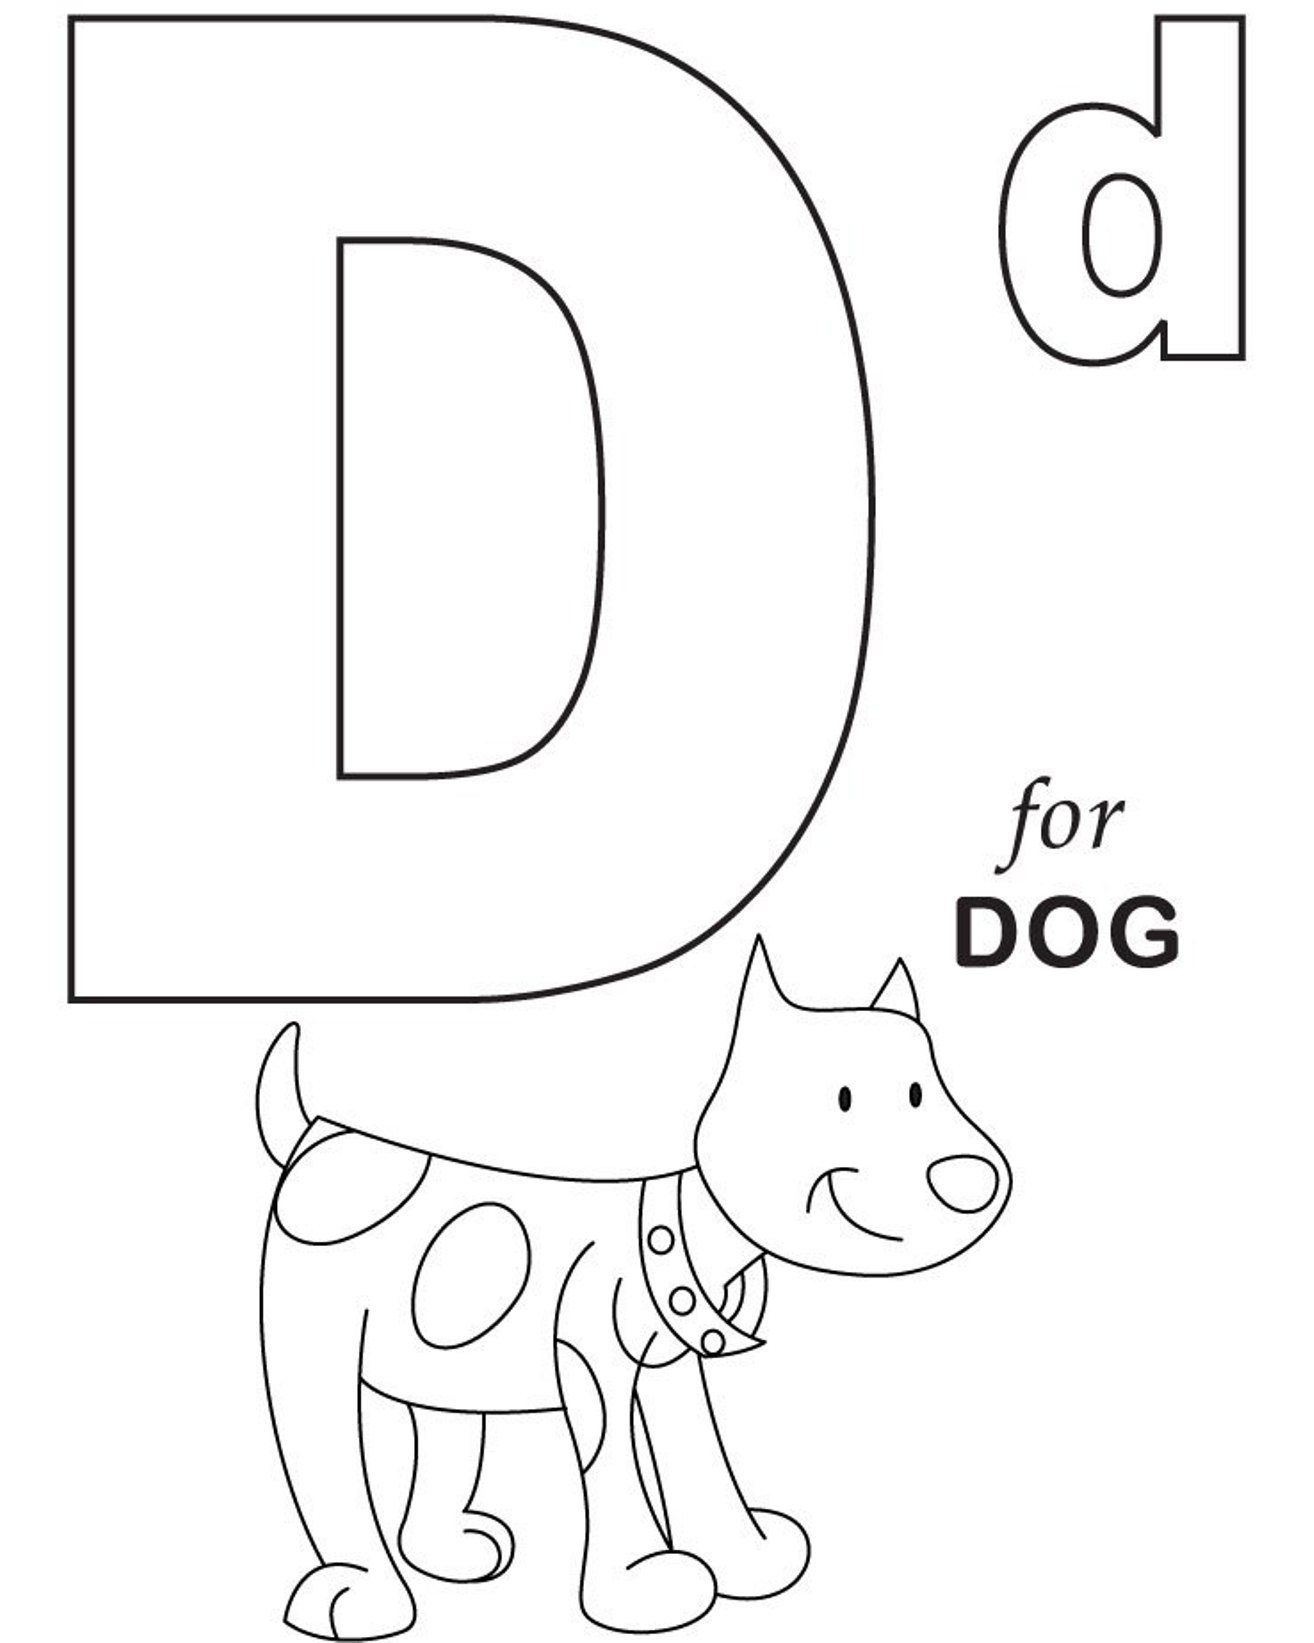 Alphabet Coloring D For Dog Printable Alphabet Coloring Pages D For Dog Printable Alphabet